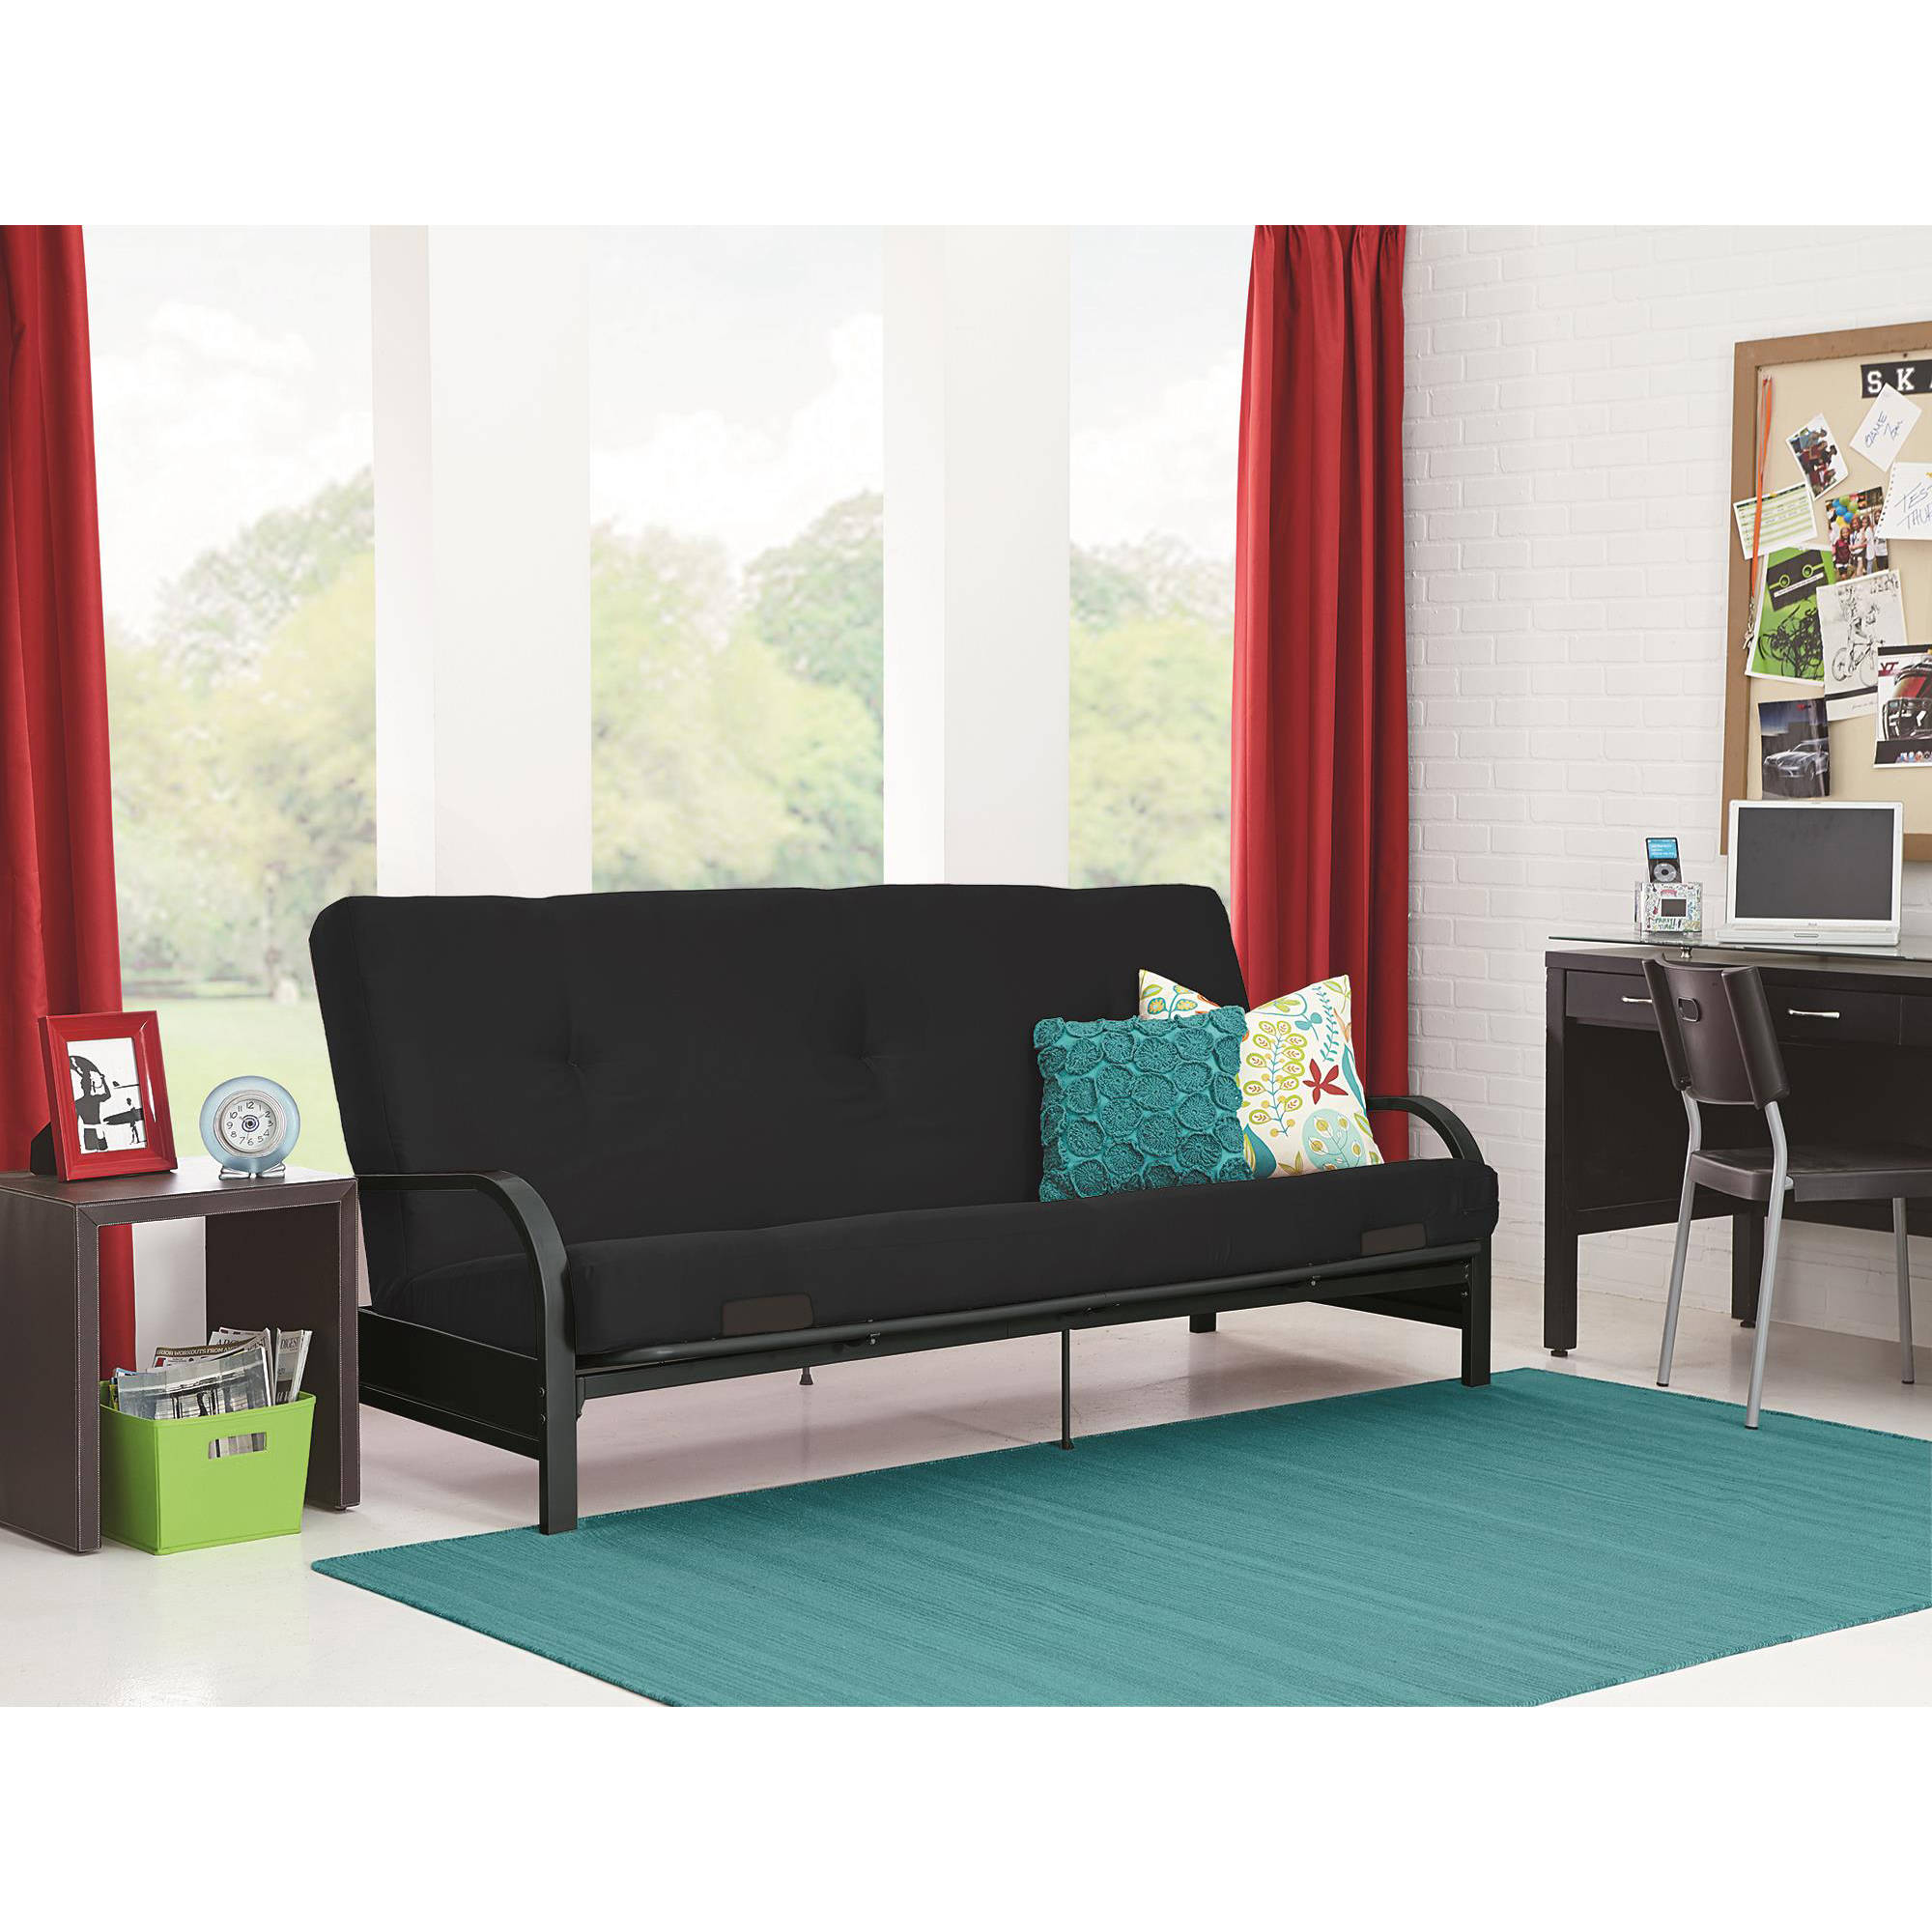 Mainstays Black Metal Arm Futon With Full Size Mattress Multiple Colors Available Walmart Com Walmart Com